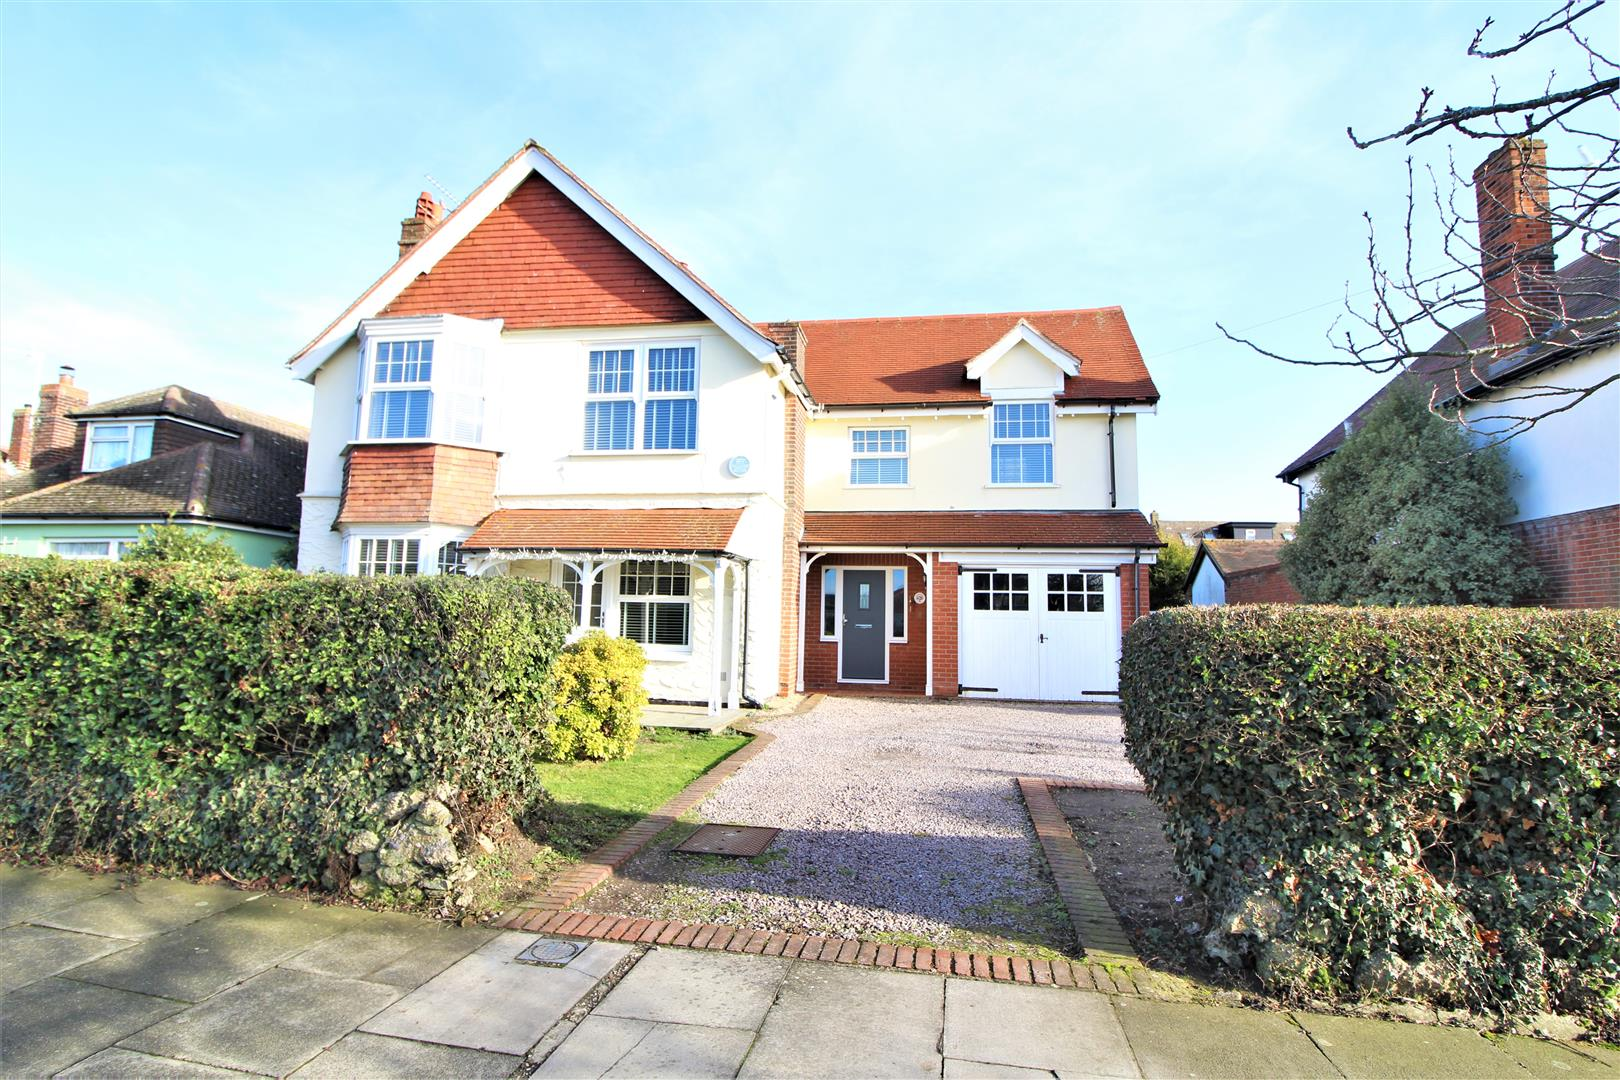 Upper Third Avenue, Frinton-On-Sea, Essex, CO13 9LH